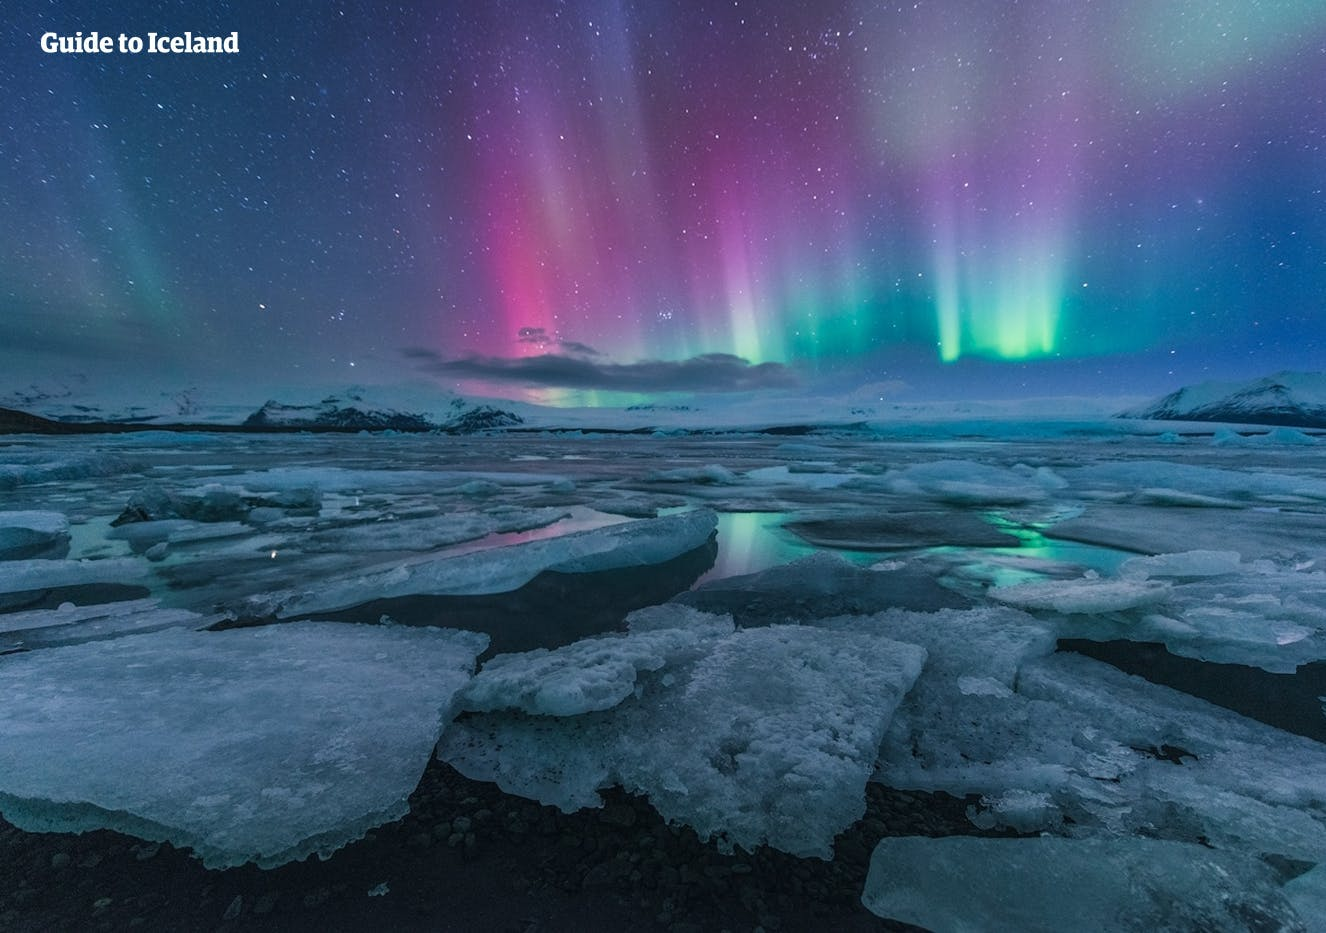 7 Day Guided Winter Tour   Half-Circle of Iceland and Flight back to Reykjavik